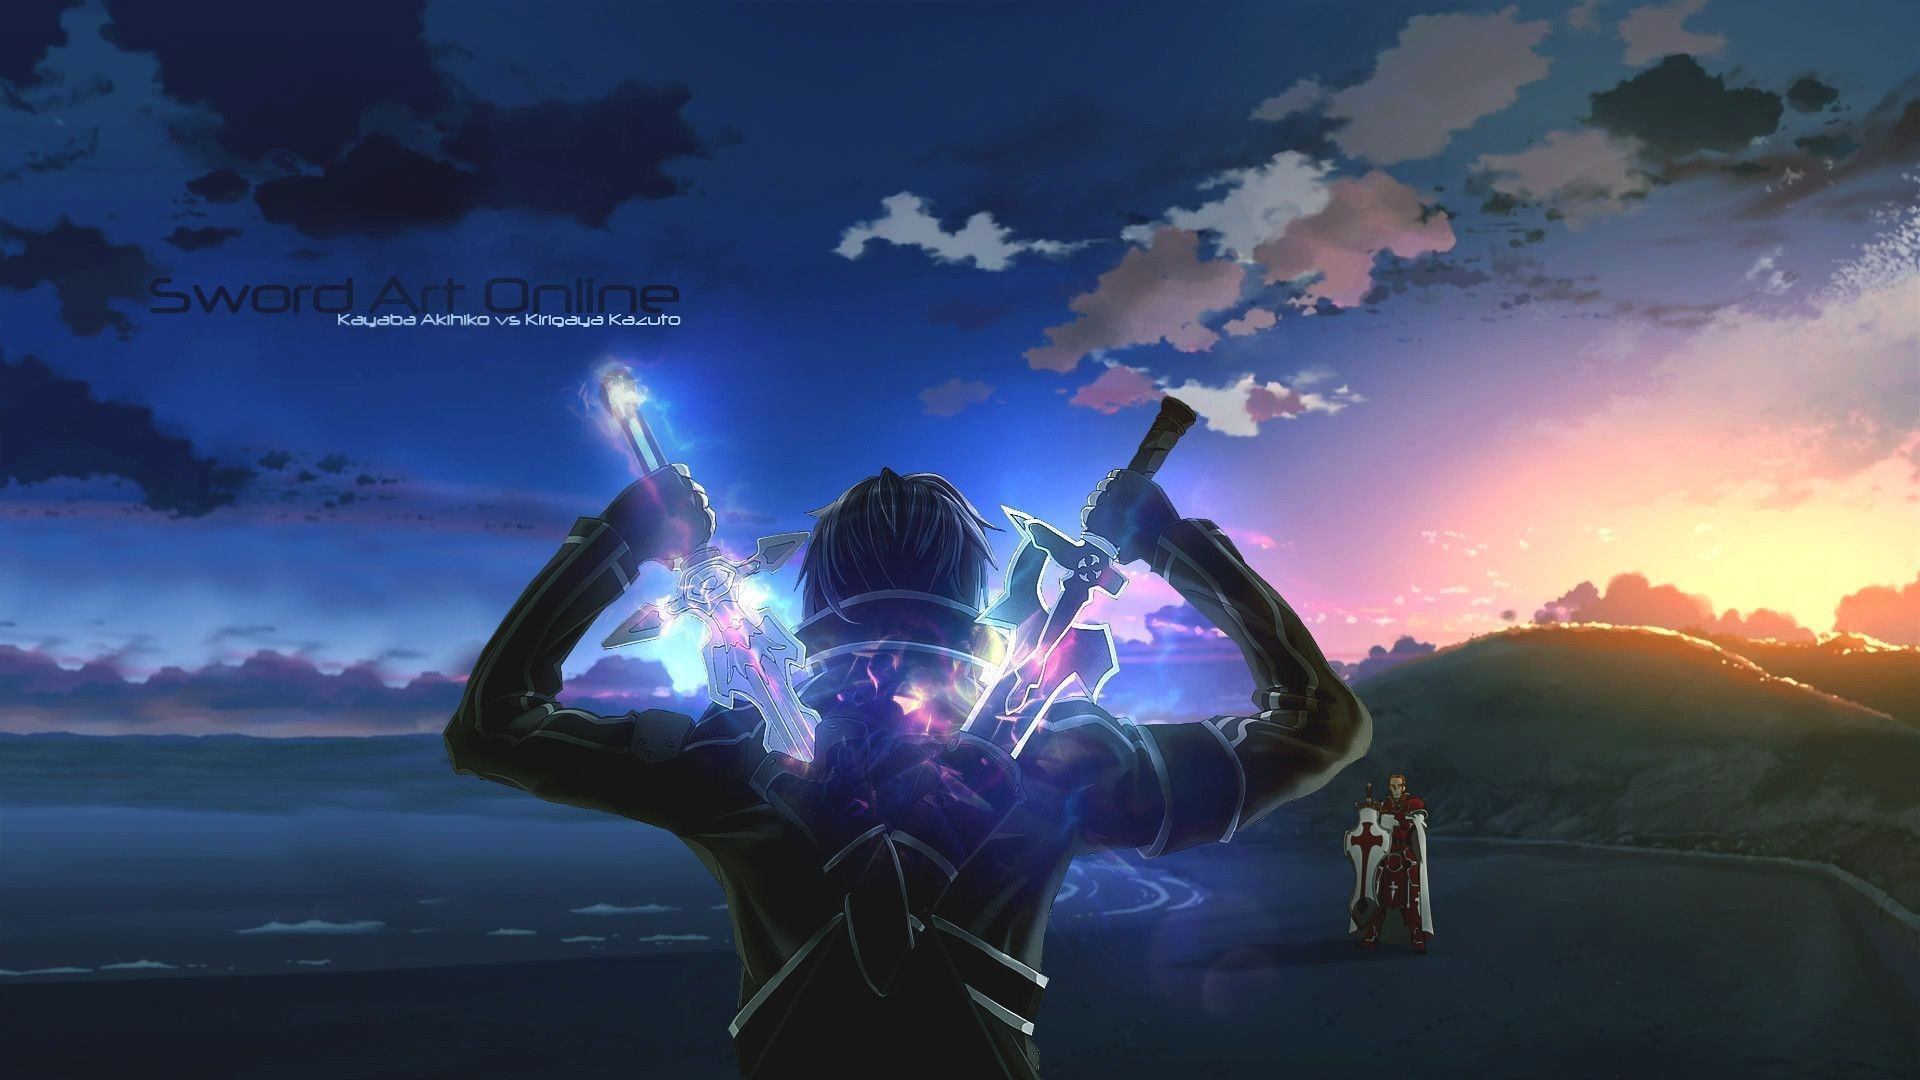 Epic Anime Backgrounds